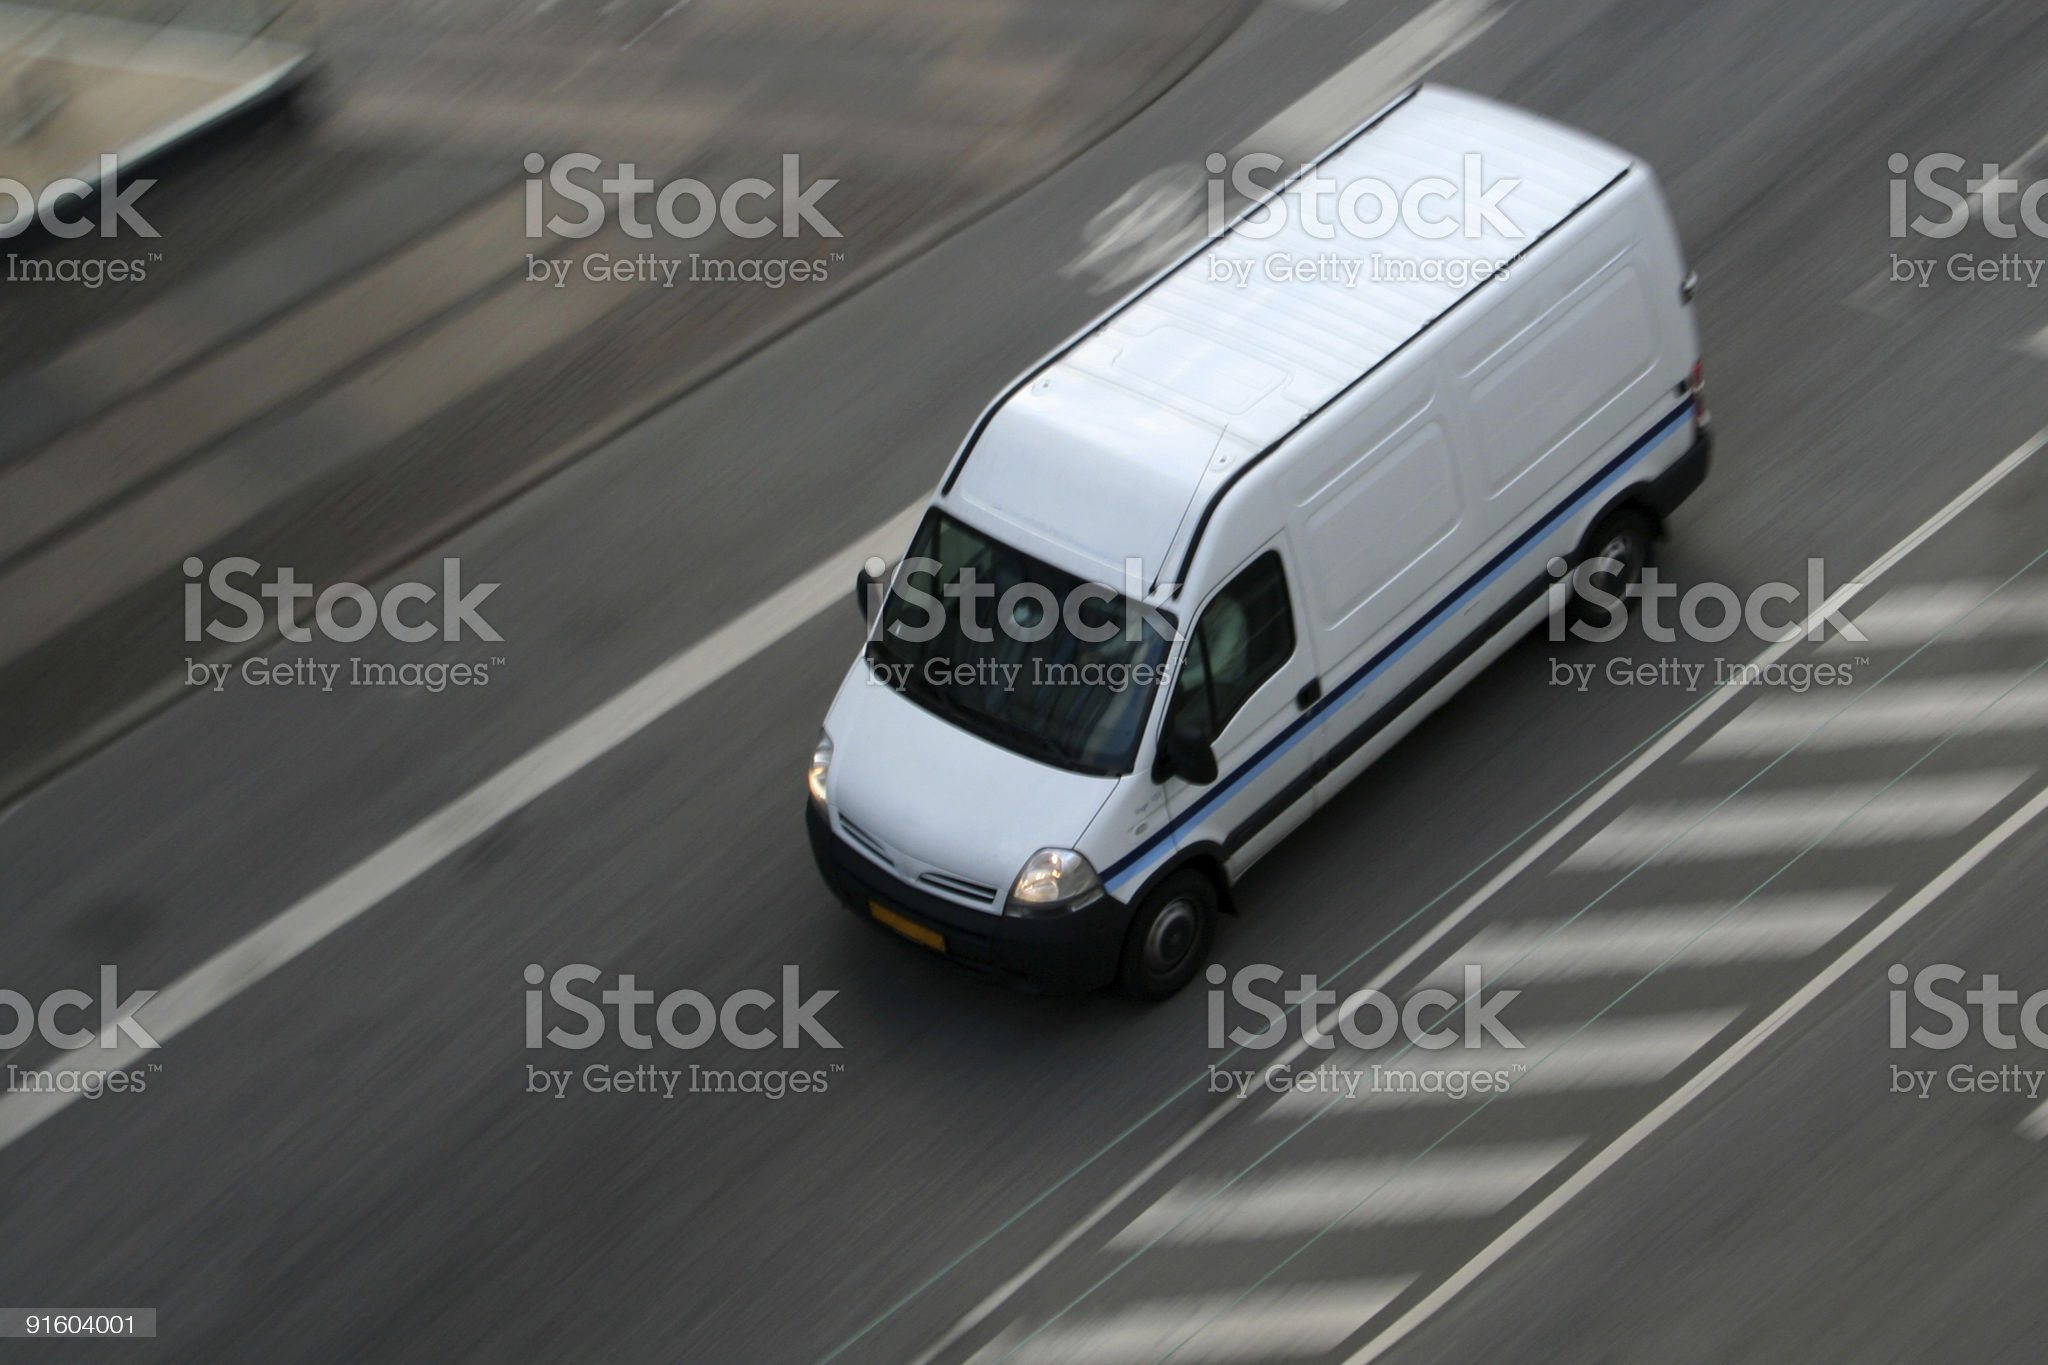 Delivery van moving on road royalty-free stock photo